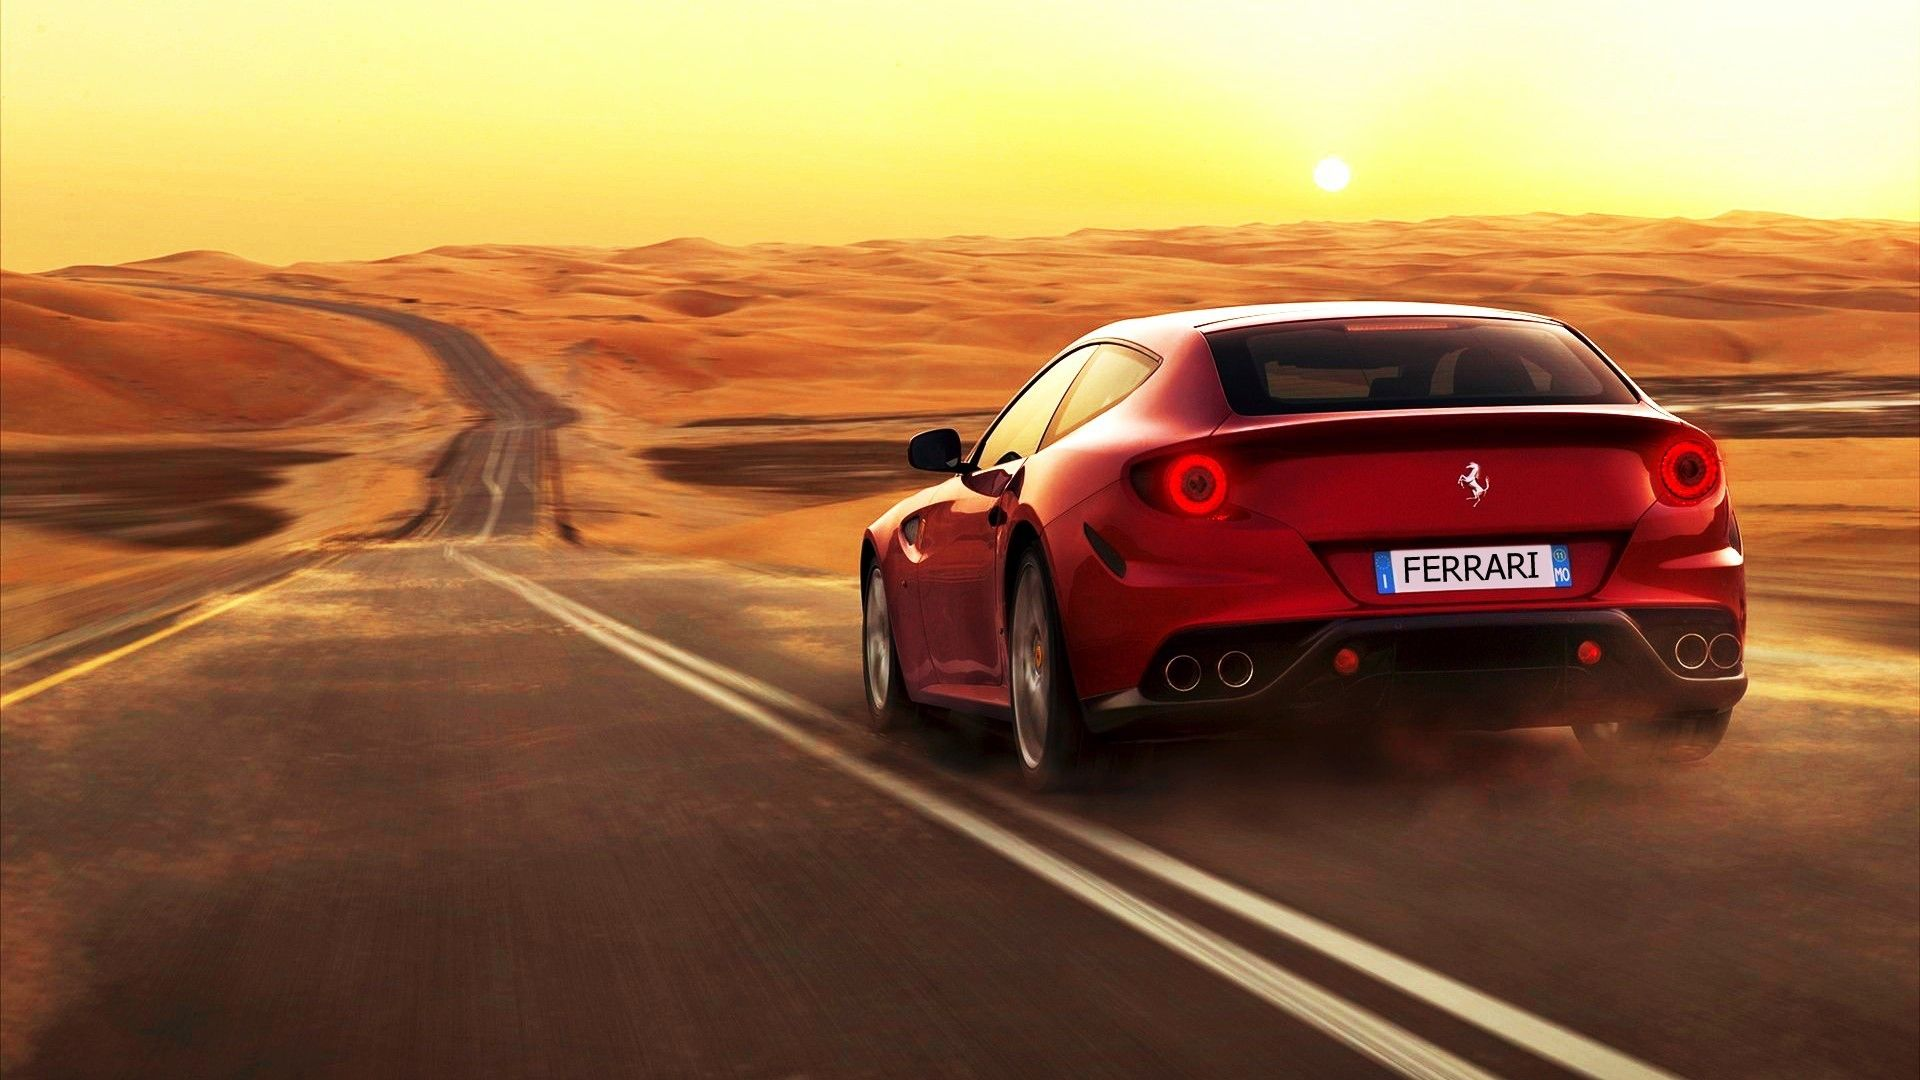 Download Ferrari Wallpaper High Resolution For Widescreen Wallpapers And Pictures - Medium